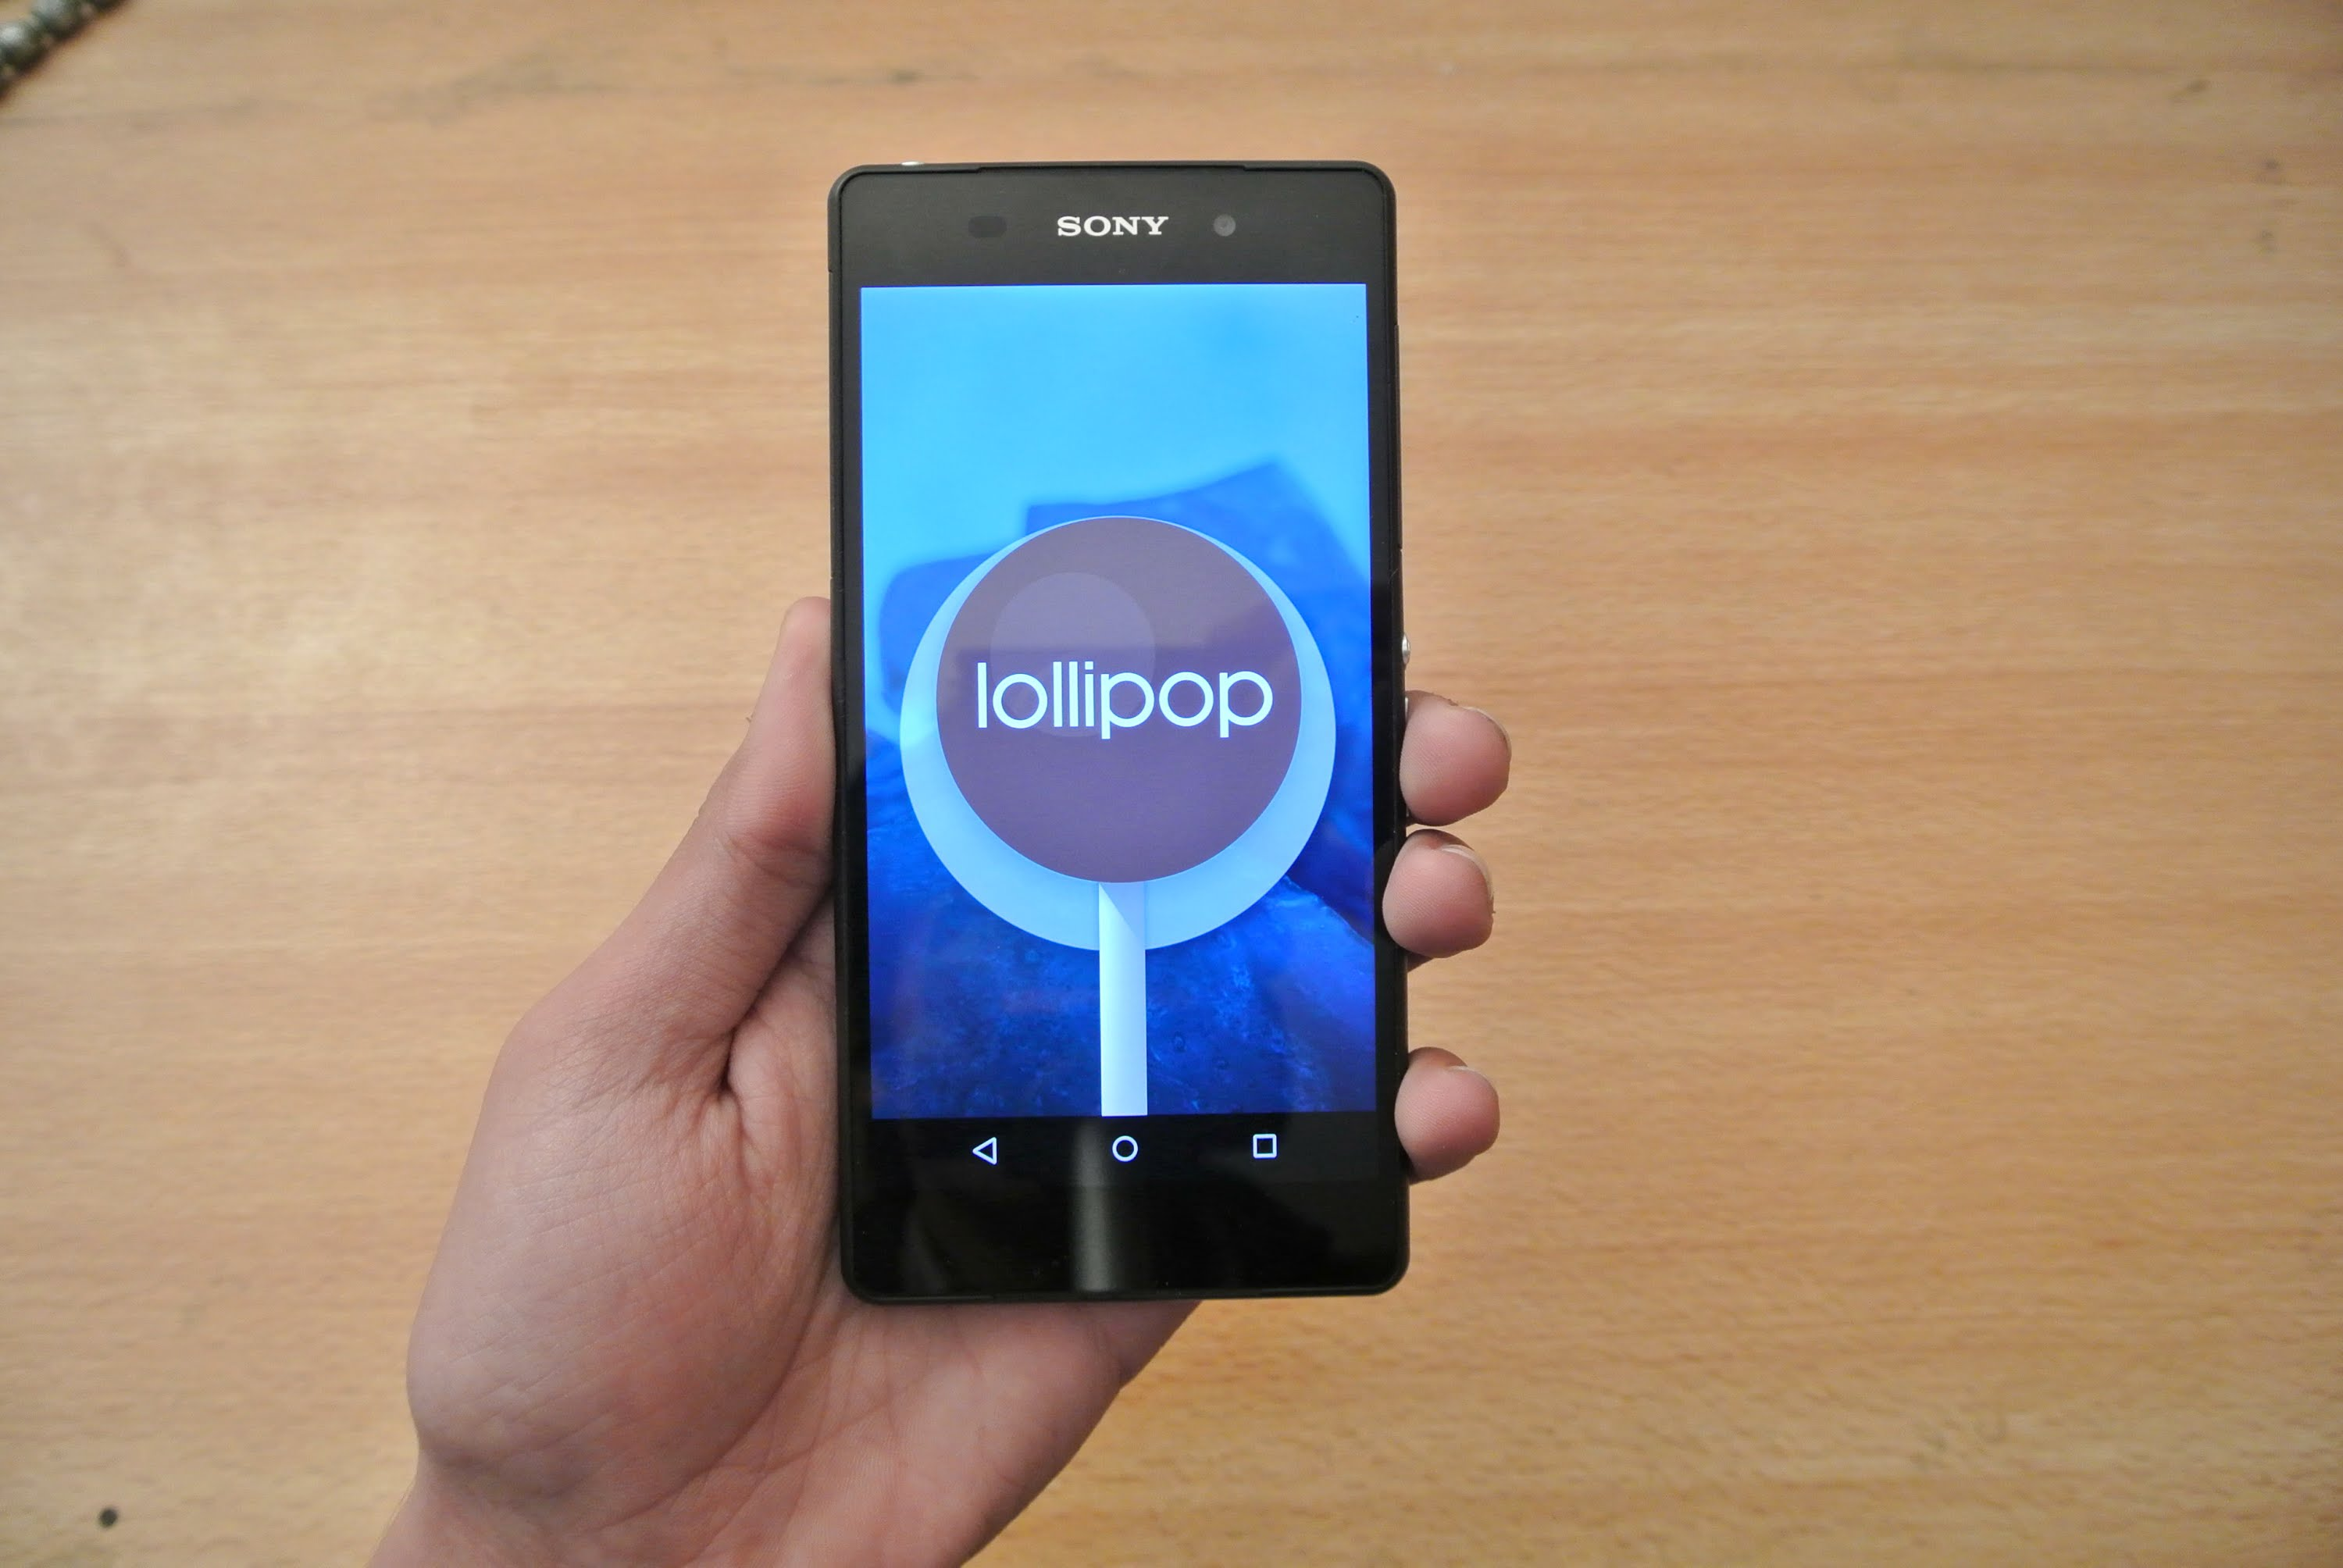 Xperia Z2, Z2 Compact and Z prepping for Android Lollipop